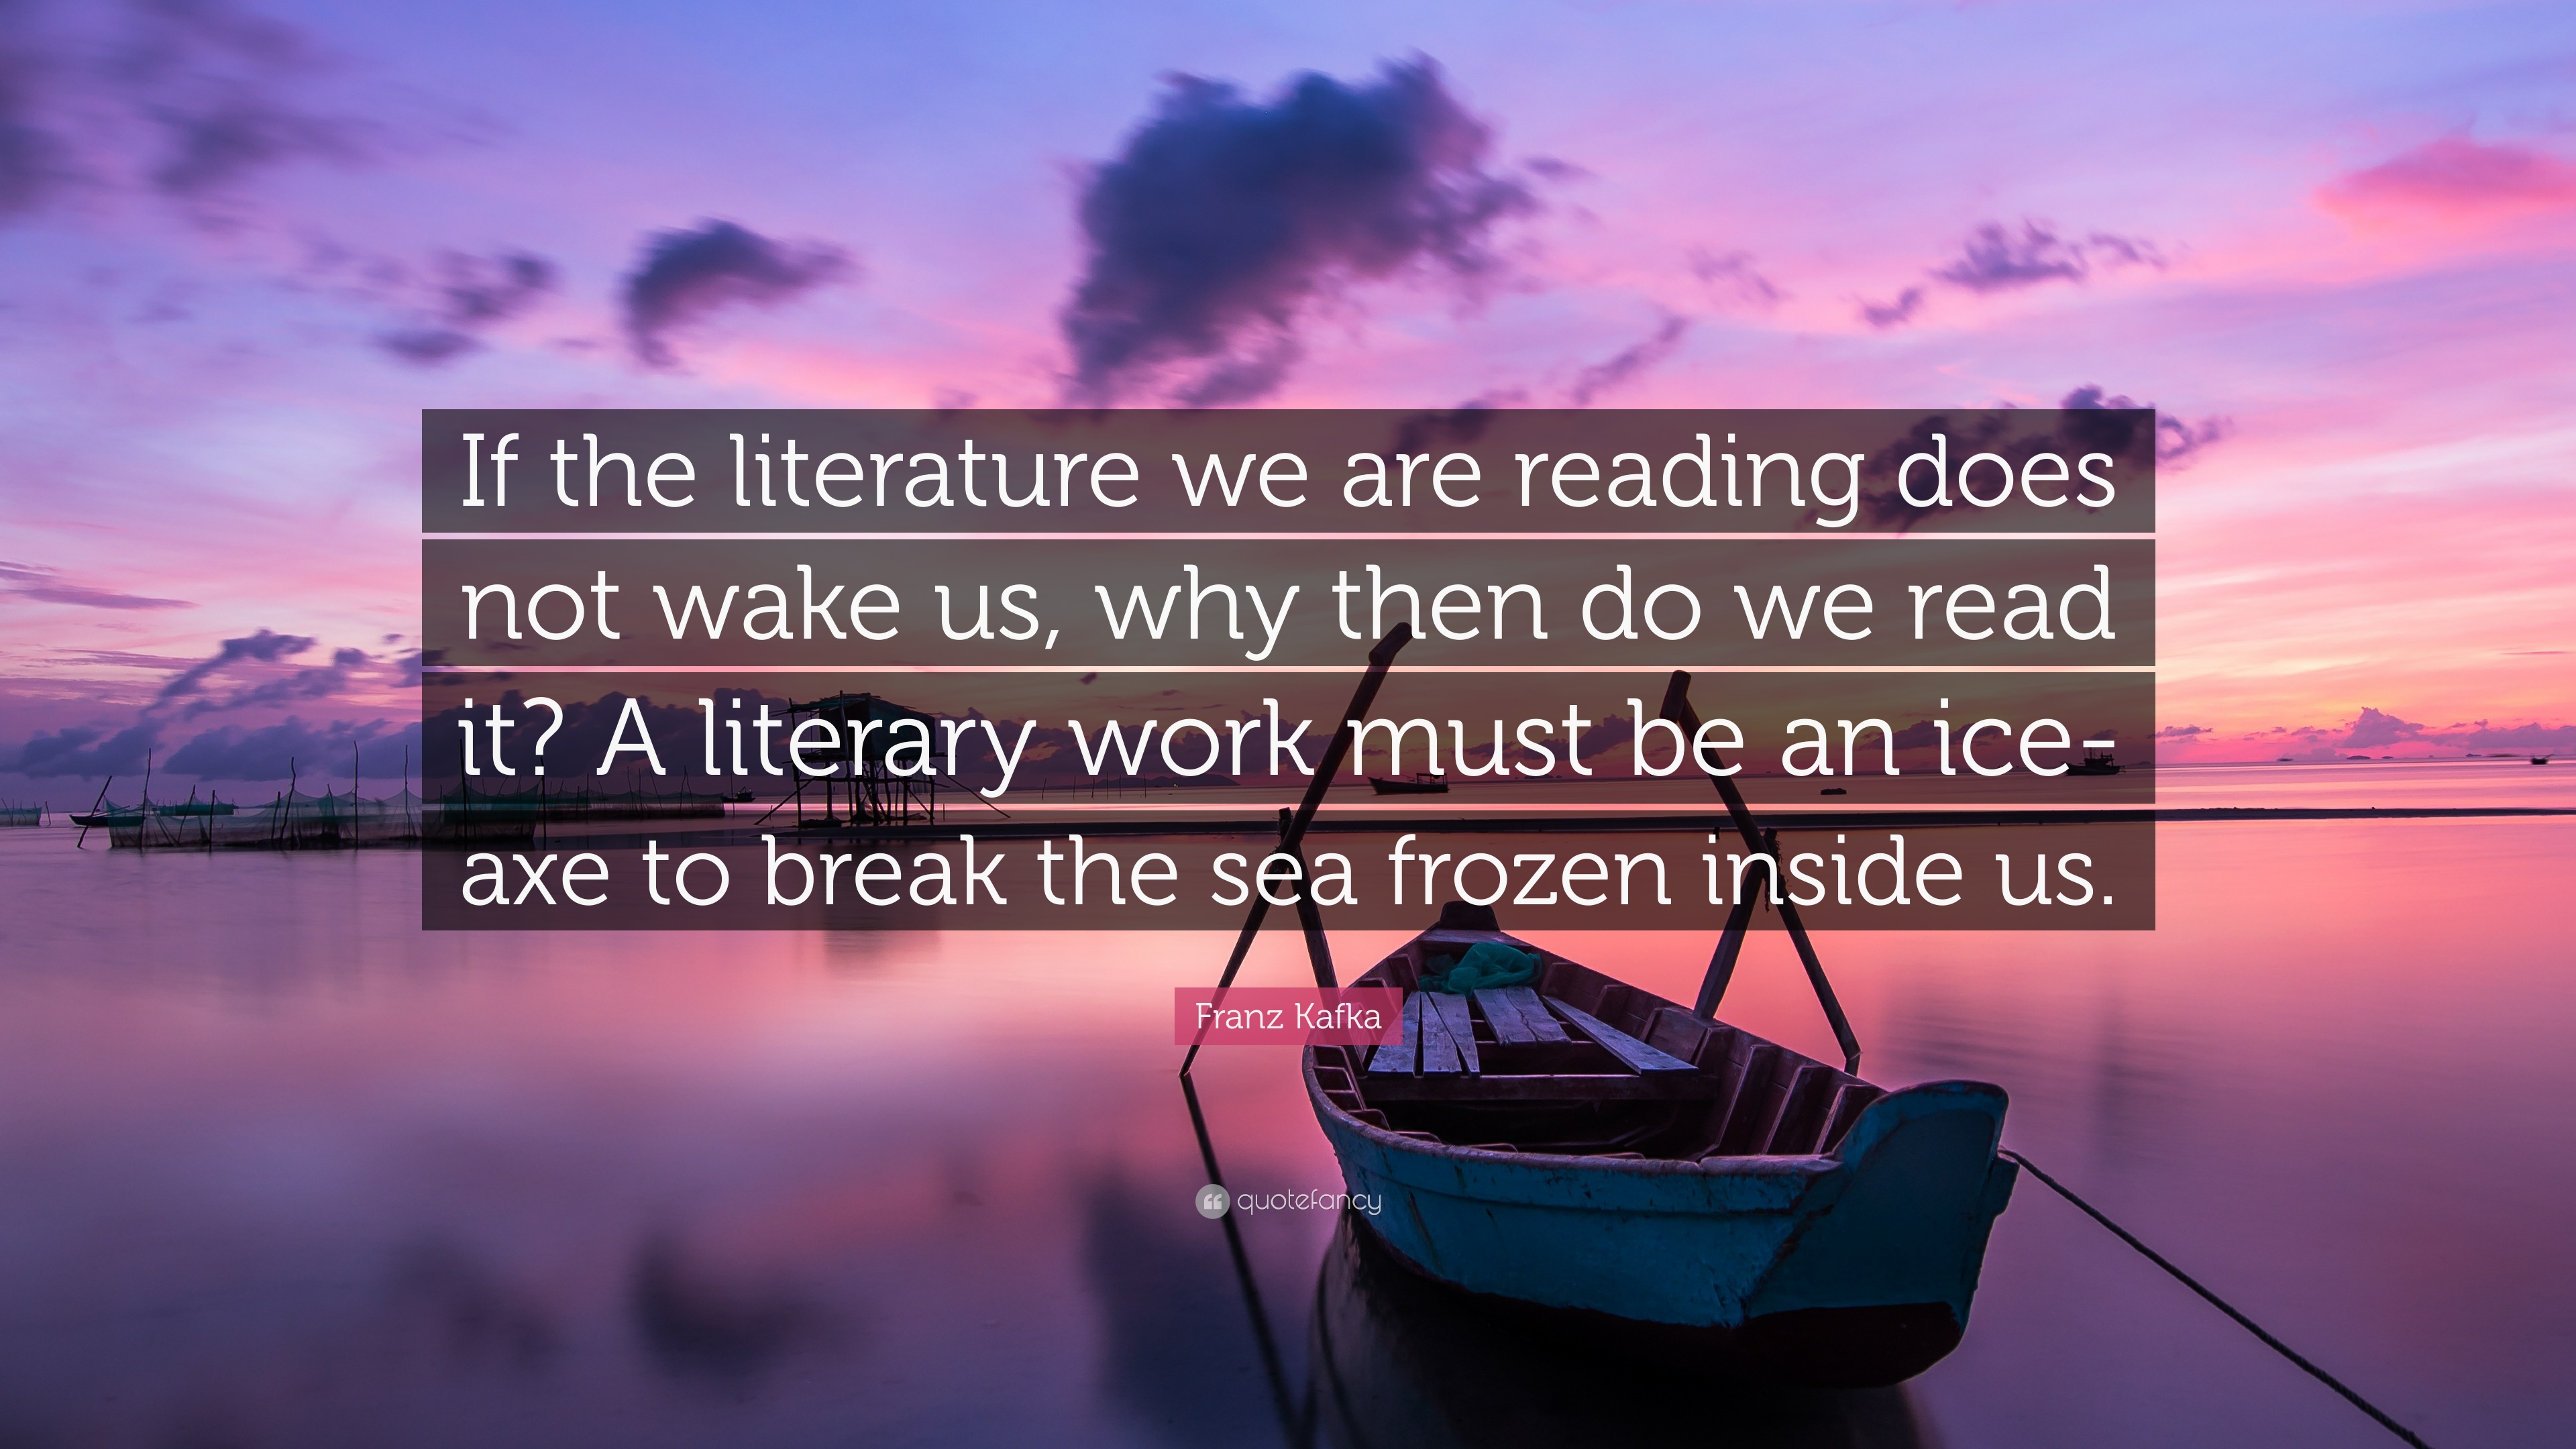 why do we read literature Why do we read fiction understanding why your readers will pick up your book will help you craft something they'll love.